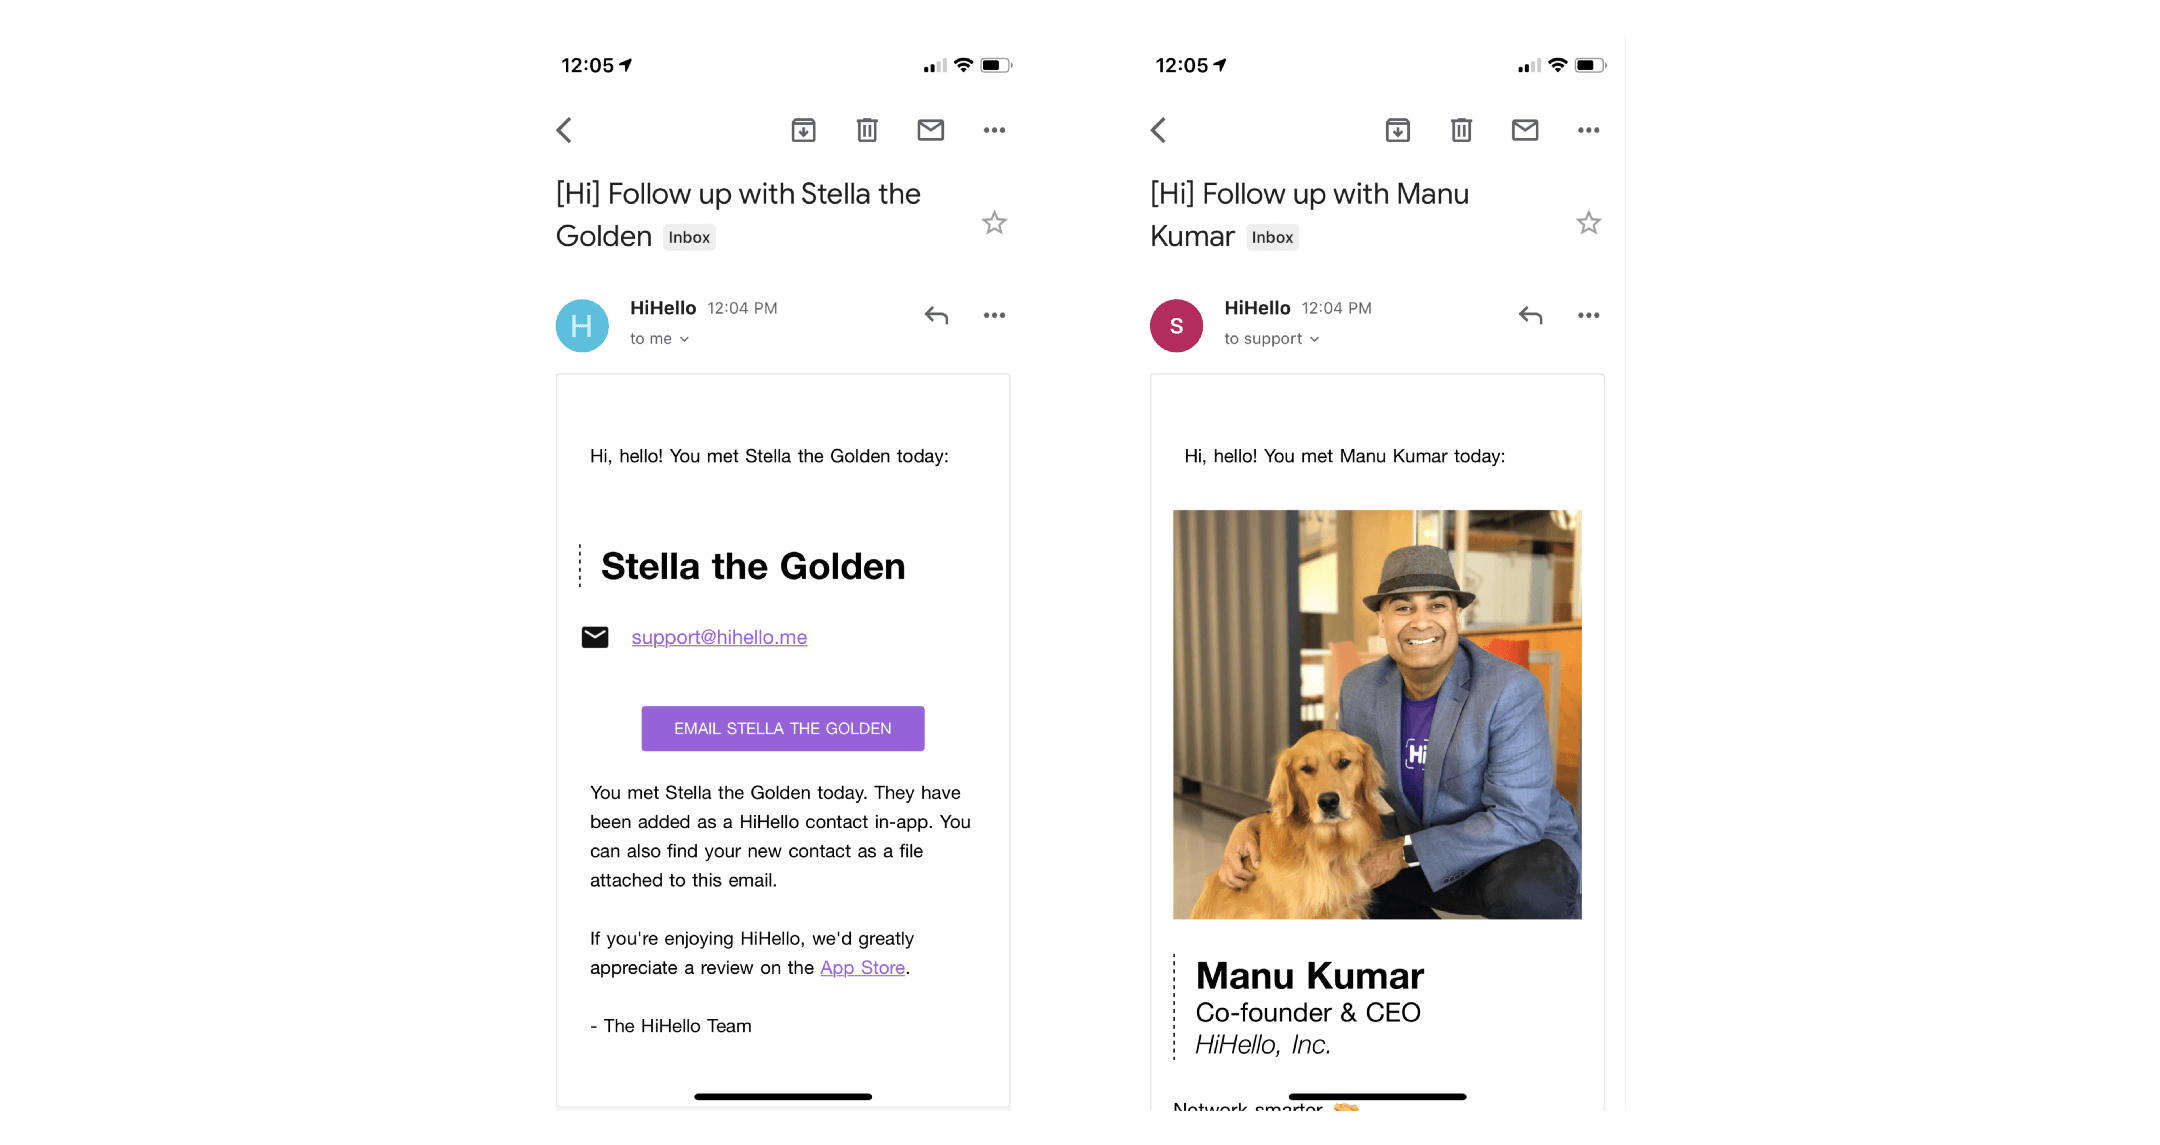 HiHello follow-up email